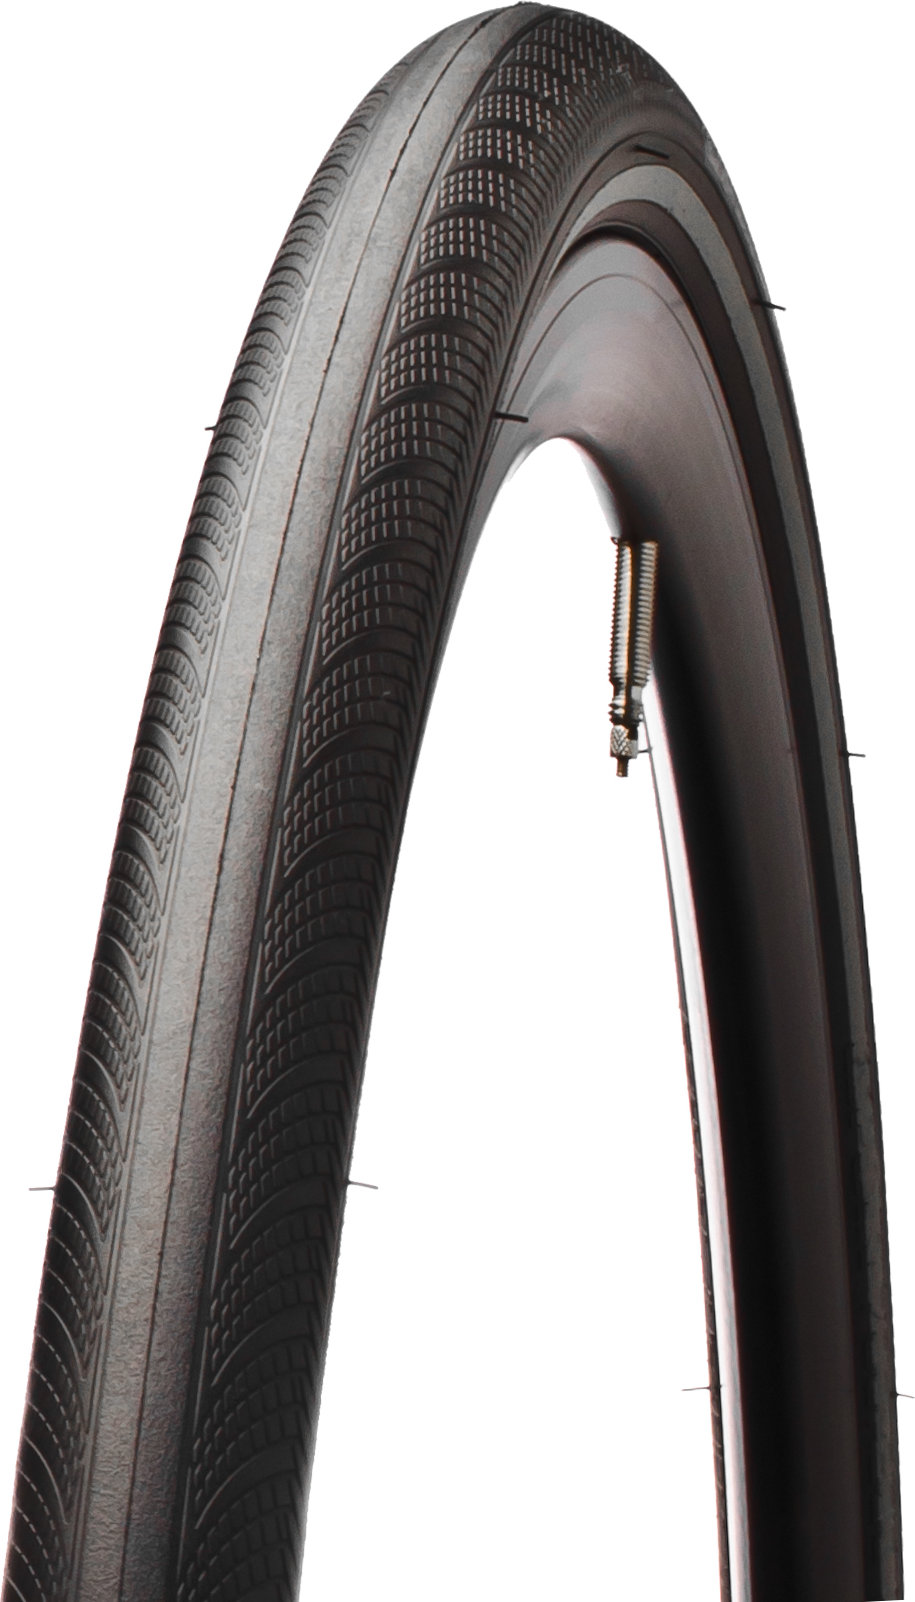 SPECIALIZED ESPOIR SPORT REFLECT TIRE 700X30C - SPECIALIZED ESPOIR SPORT REFLECT TIRE 700X30C